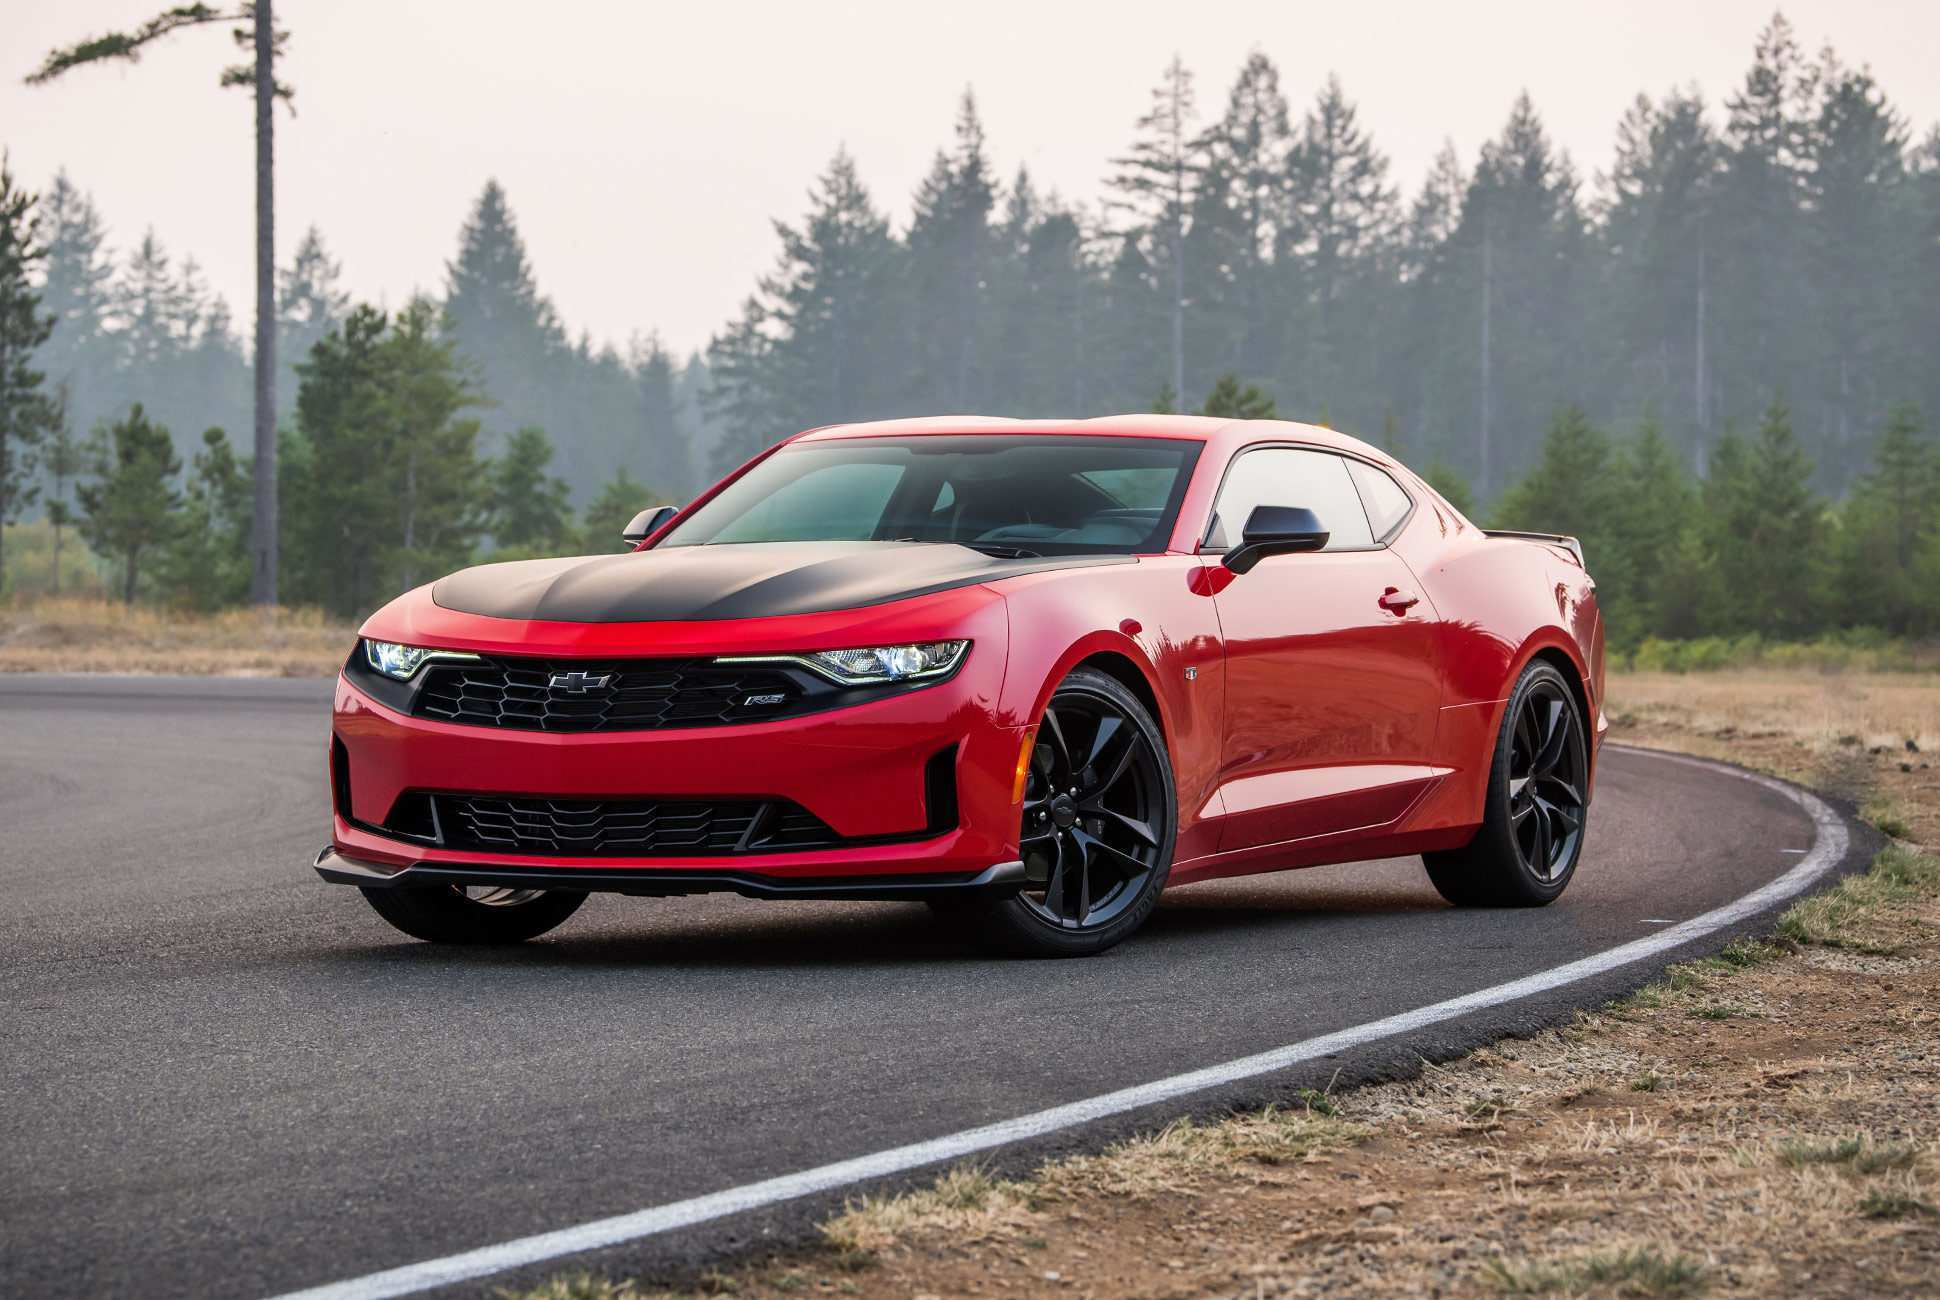 22 All New 2019 Chevrolet Camaro Release Date And Concept